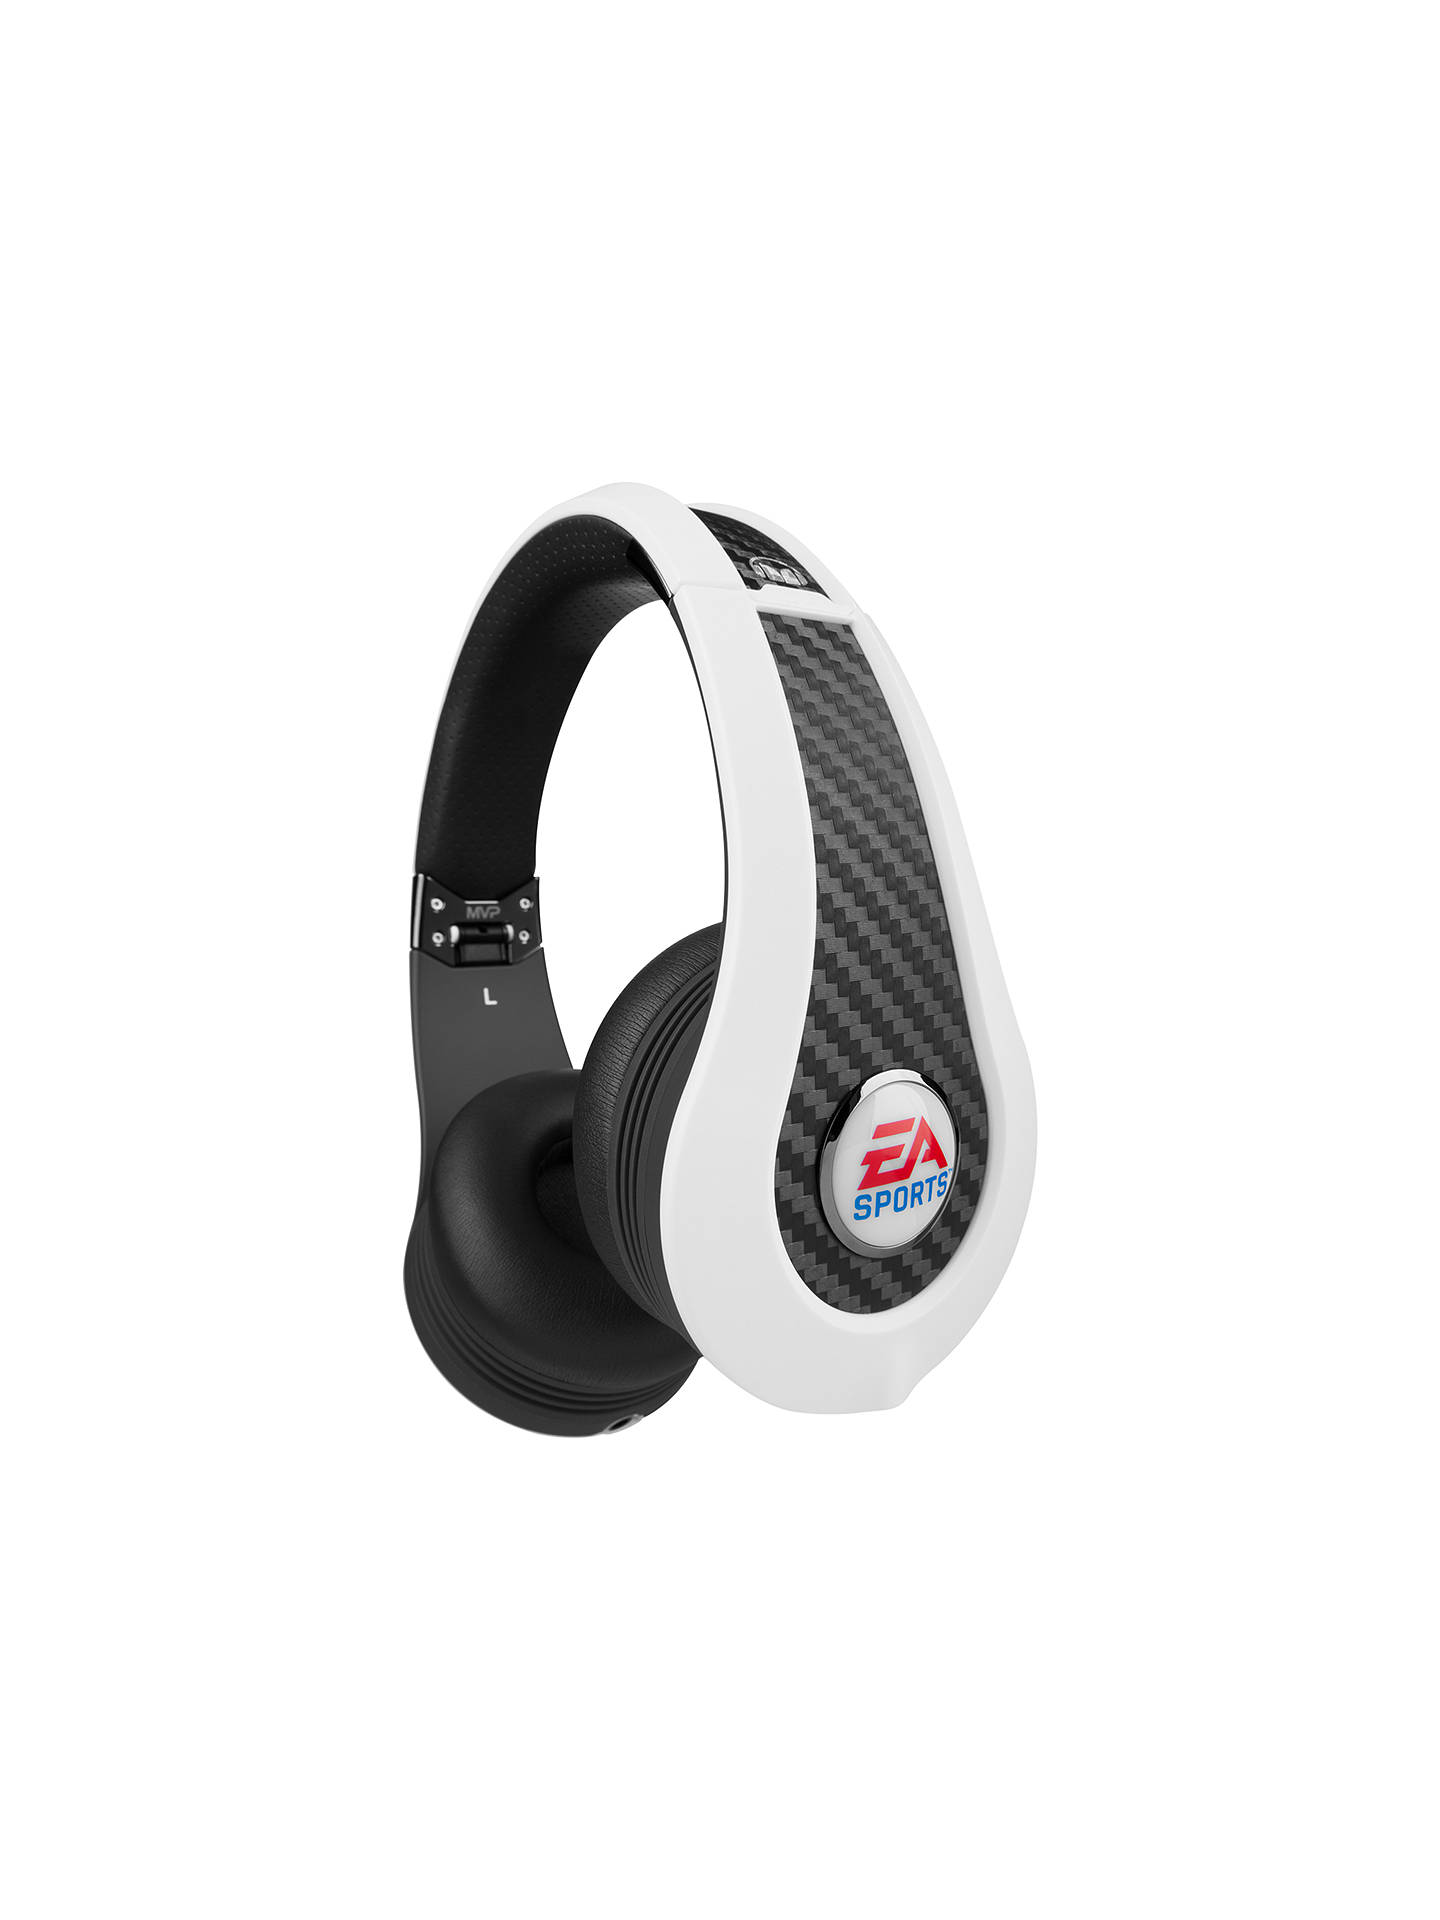 Monster EA Sports MVP Carbon Gaming Headset for Xbox 360, PS3, Wii and PC, White